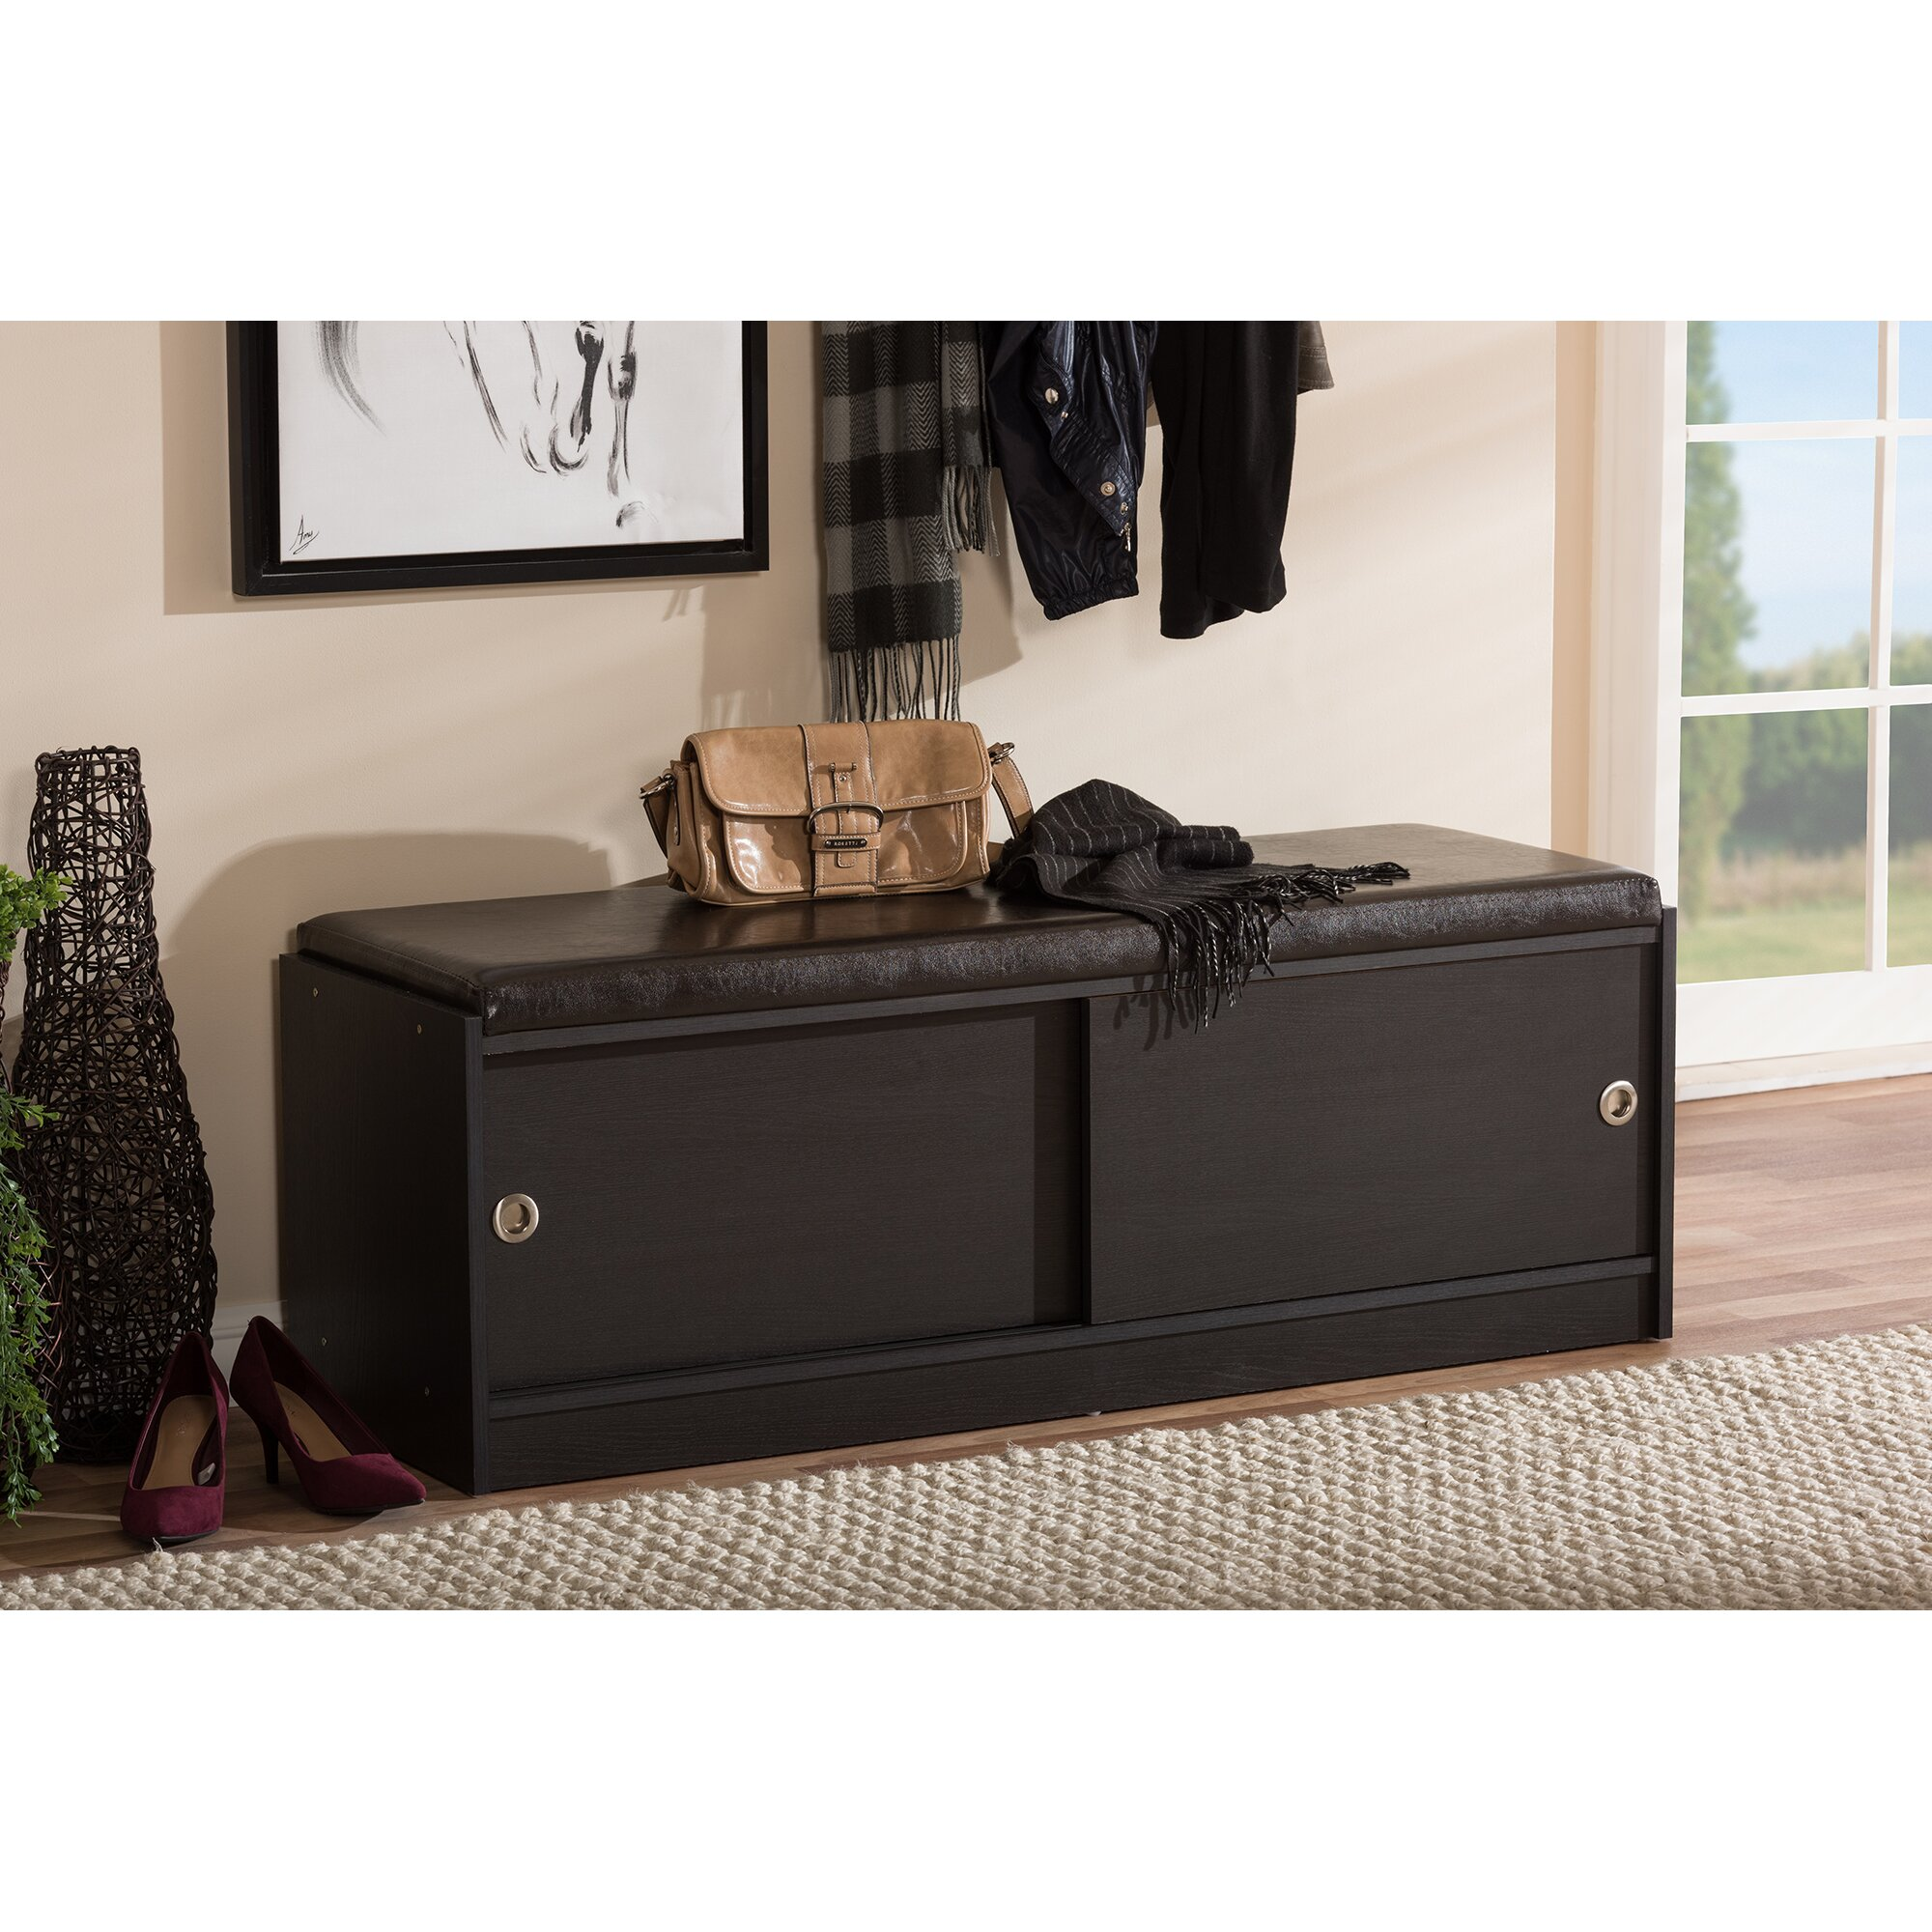 Foyer Bench Shoe Storage : Wholesale interiors clevedon wood storage entryway bench